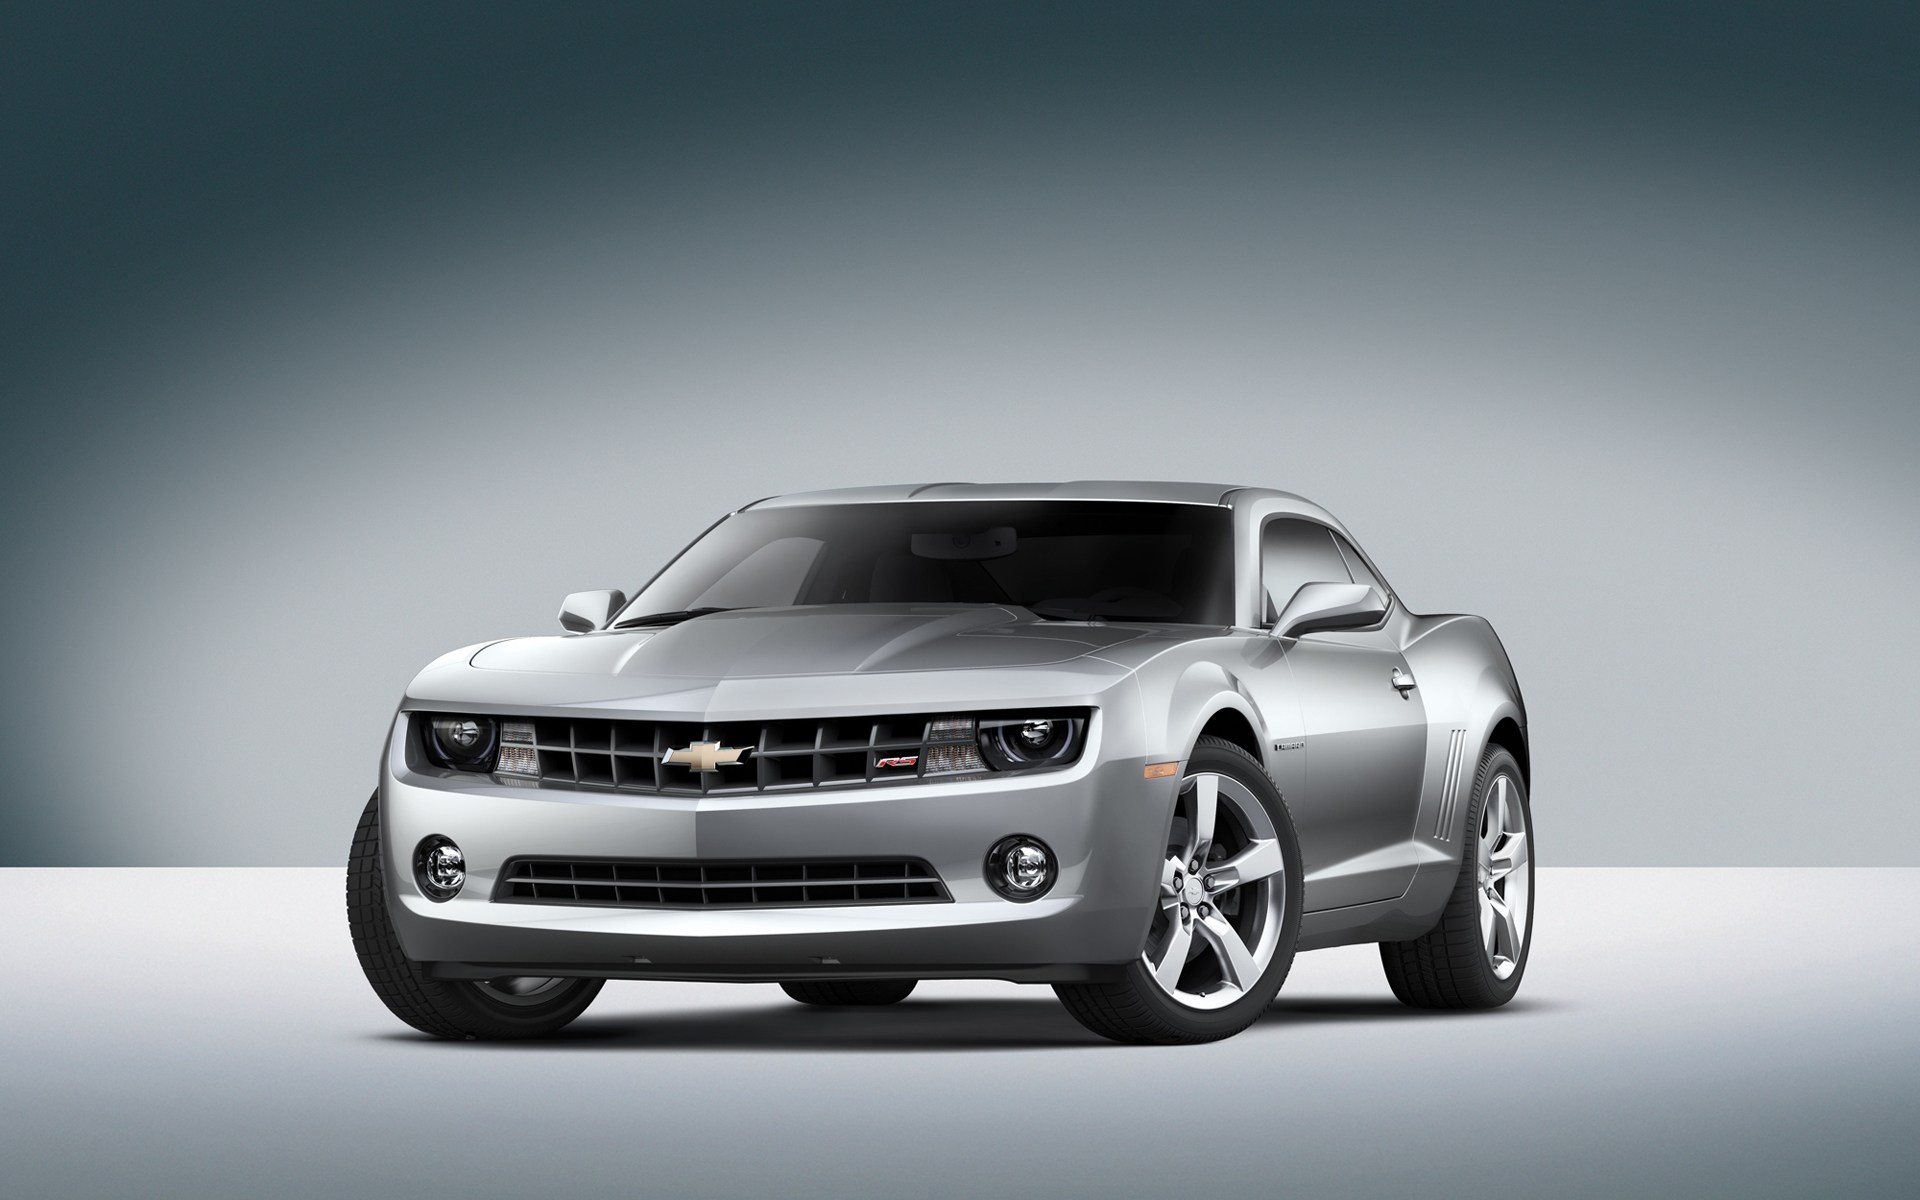 Cars Wallpapers 18   Cars Photography Desktop Wallpapers 13125 Views 1920x1200